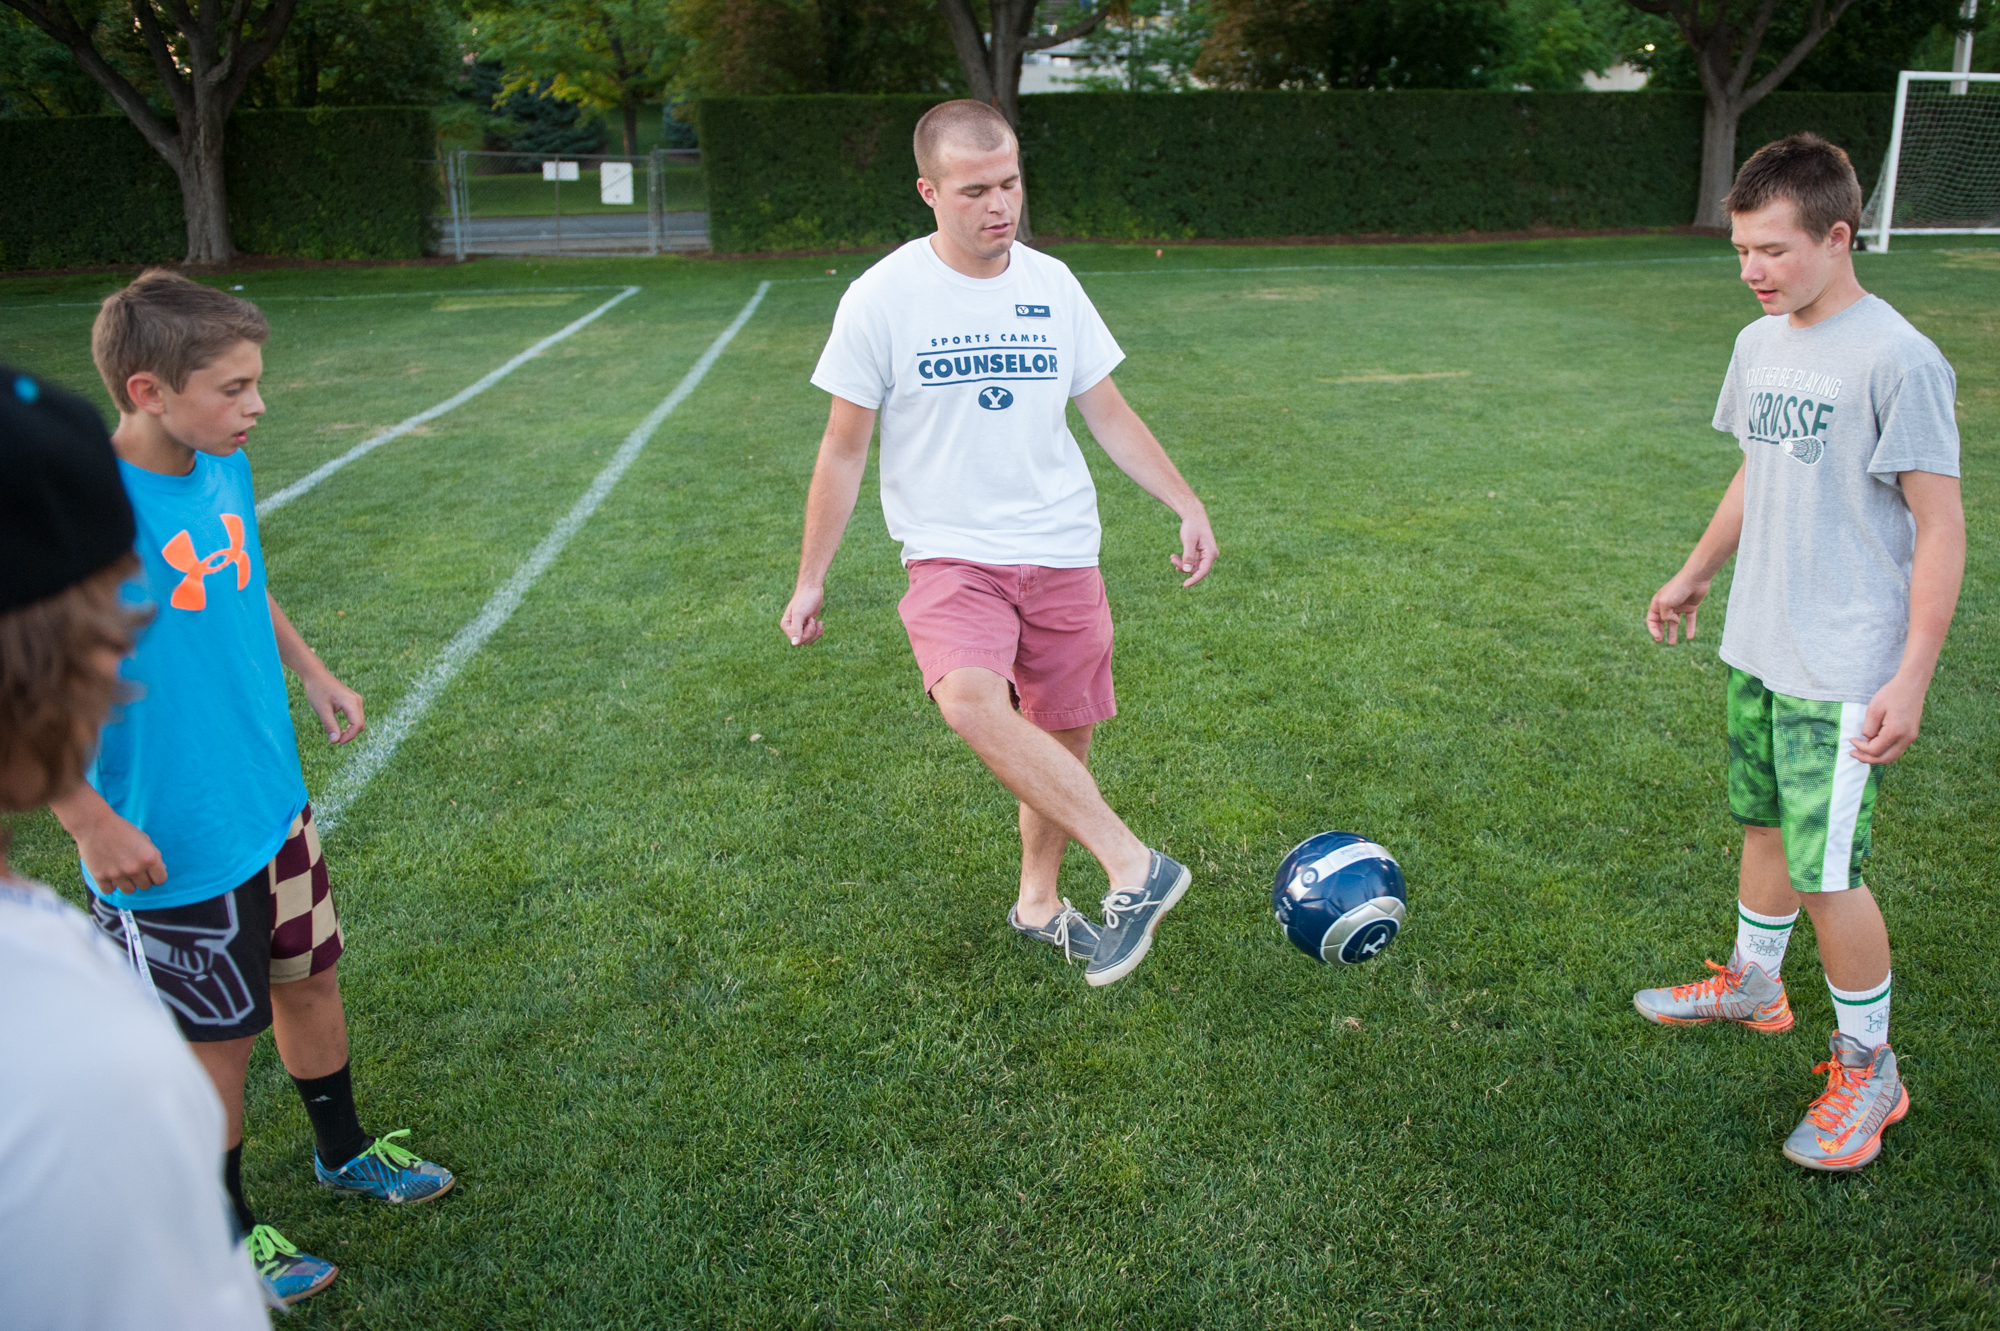 Summer camps give students opportunities to work and learn